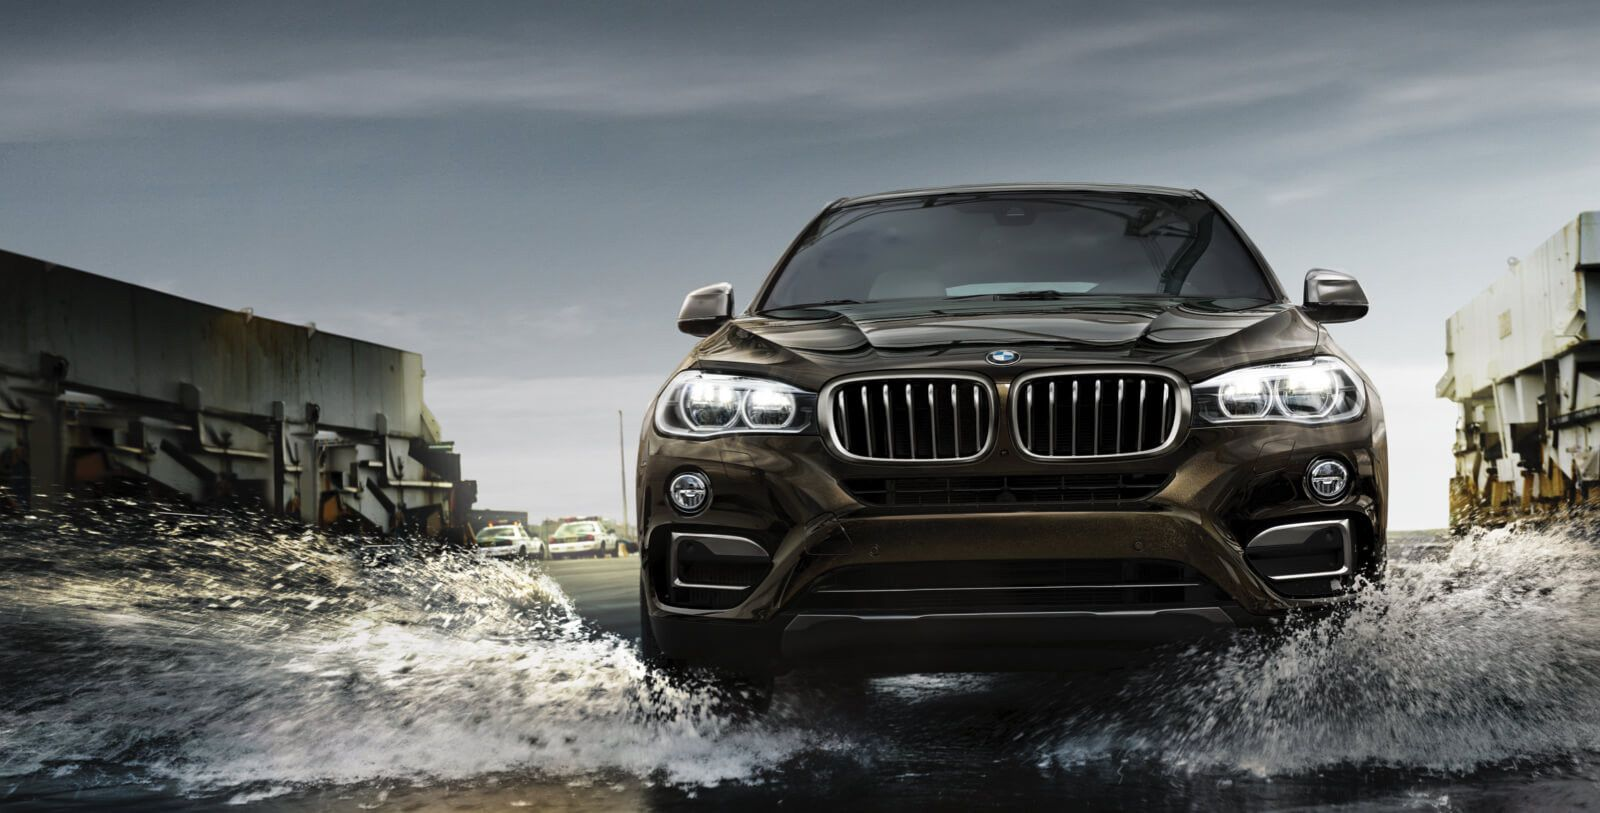 Used BMW X6 for Sale in Dubai